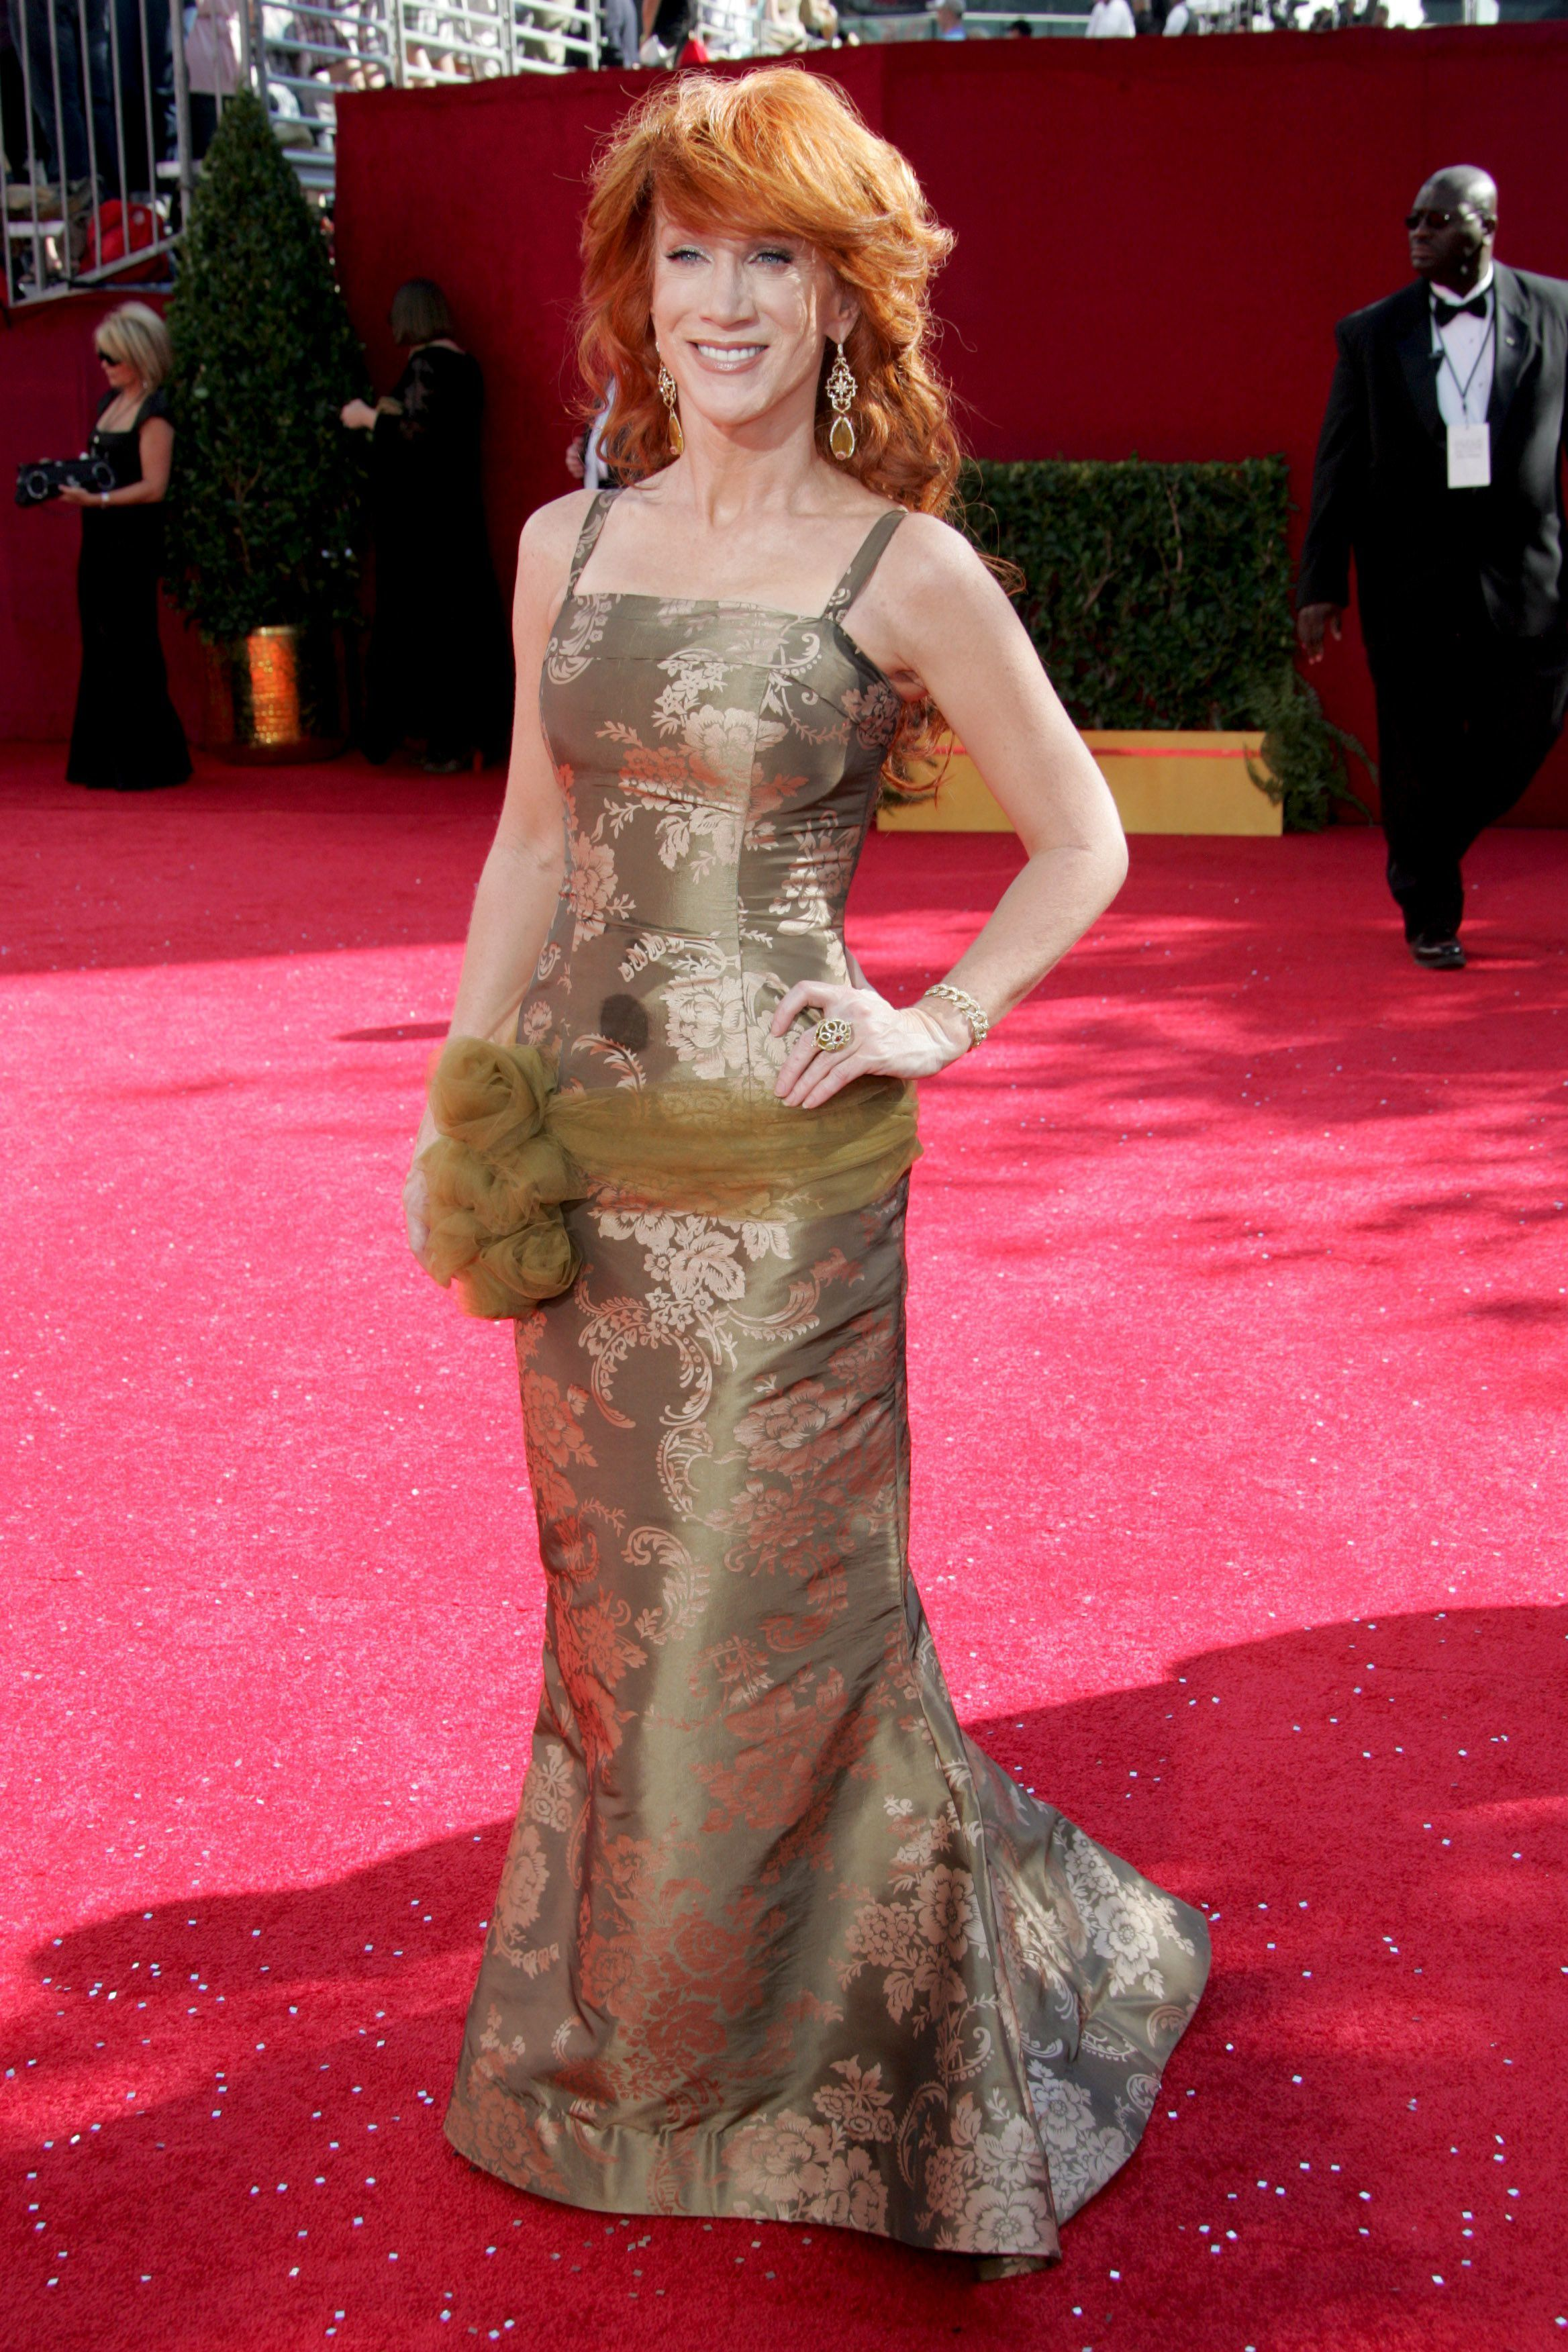 Kathy Griffin arrives at the 60th Primetime Emmy Awards in Los Angeles on Sept. 21, 2008.